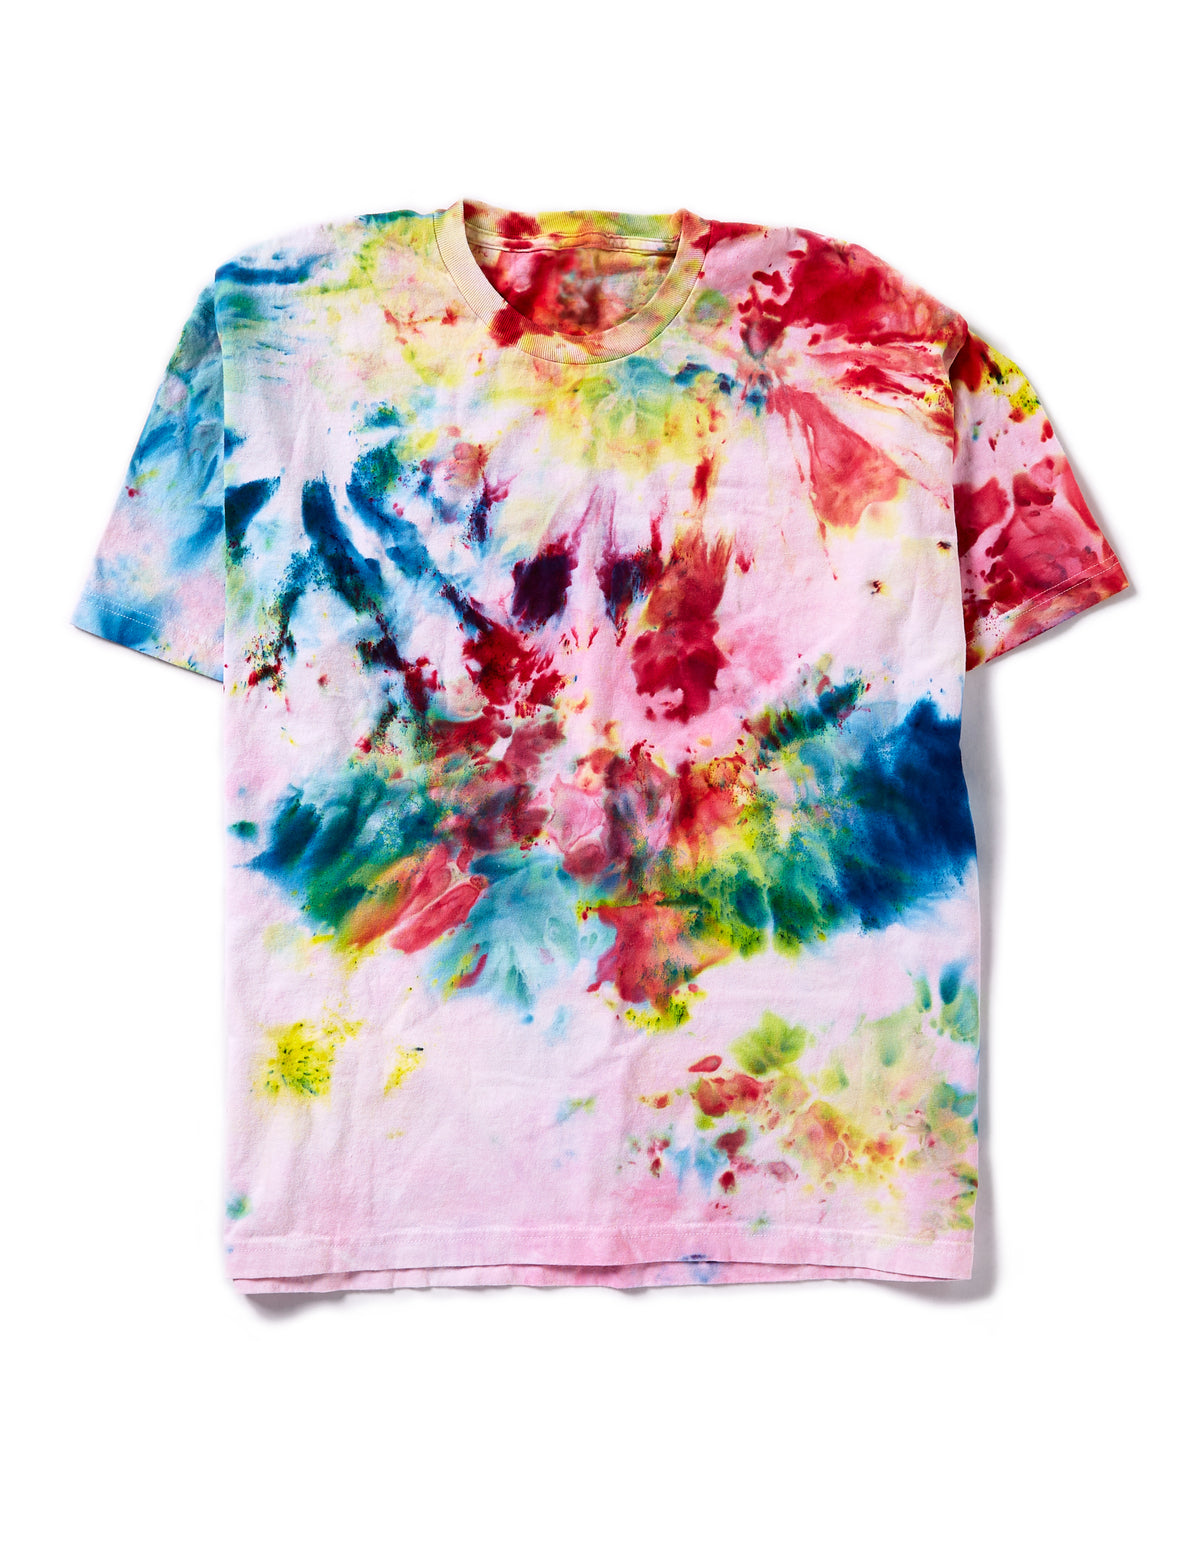 Short Sleeve Box Tee in Rainbow Composite - riverside tool & dye